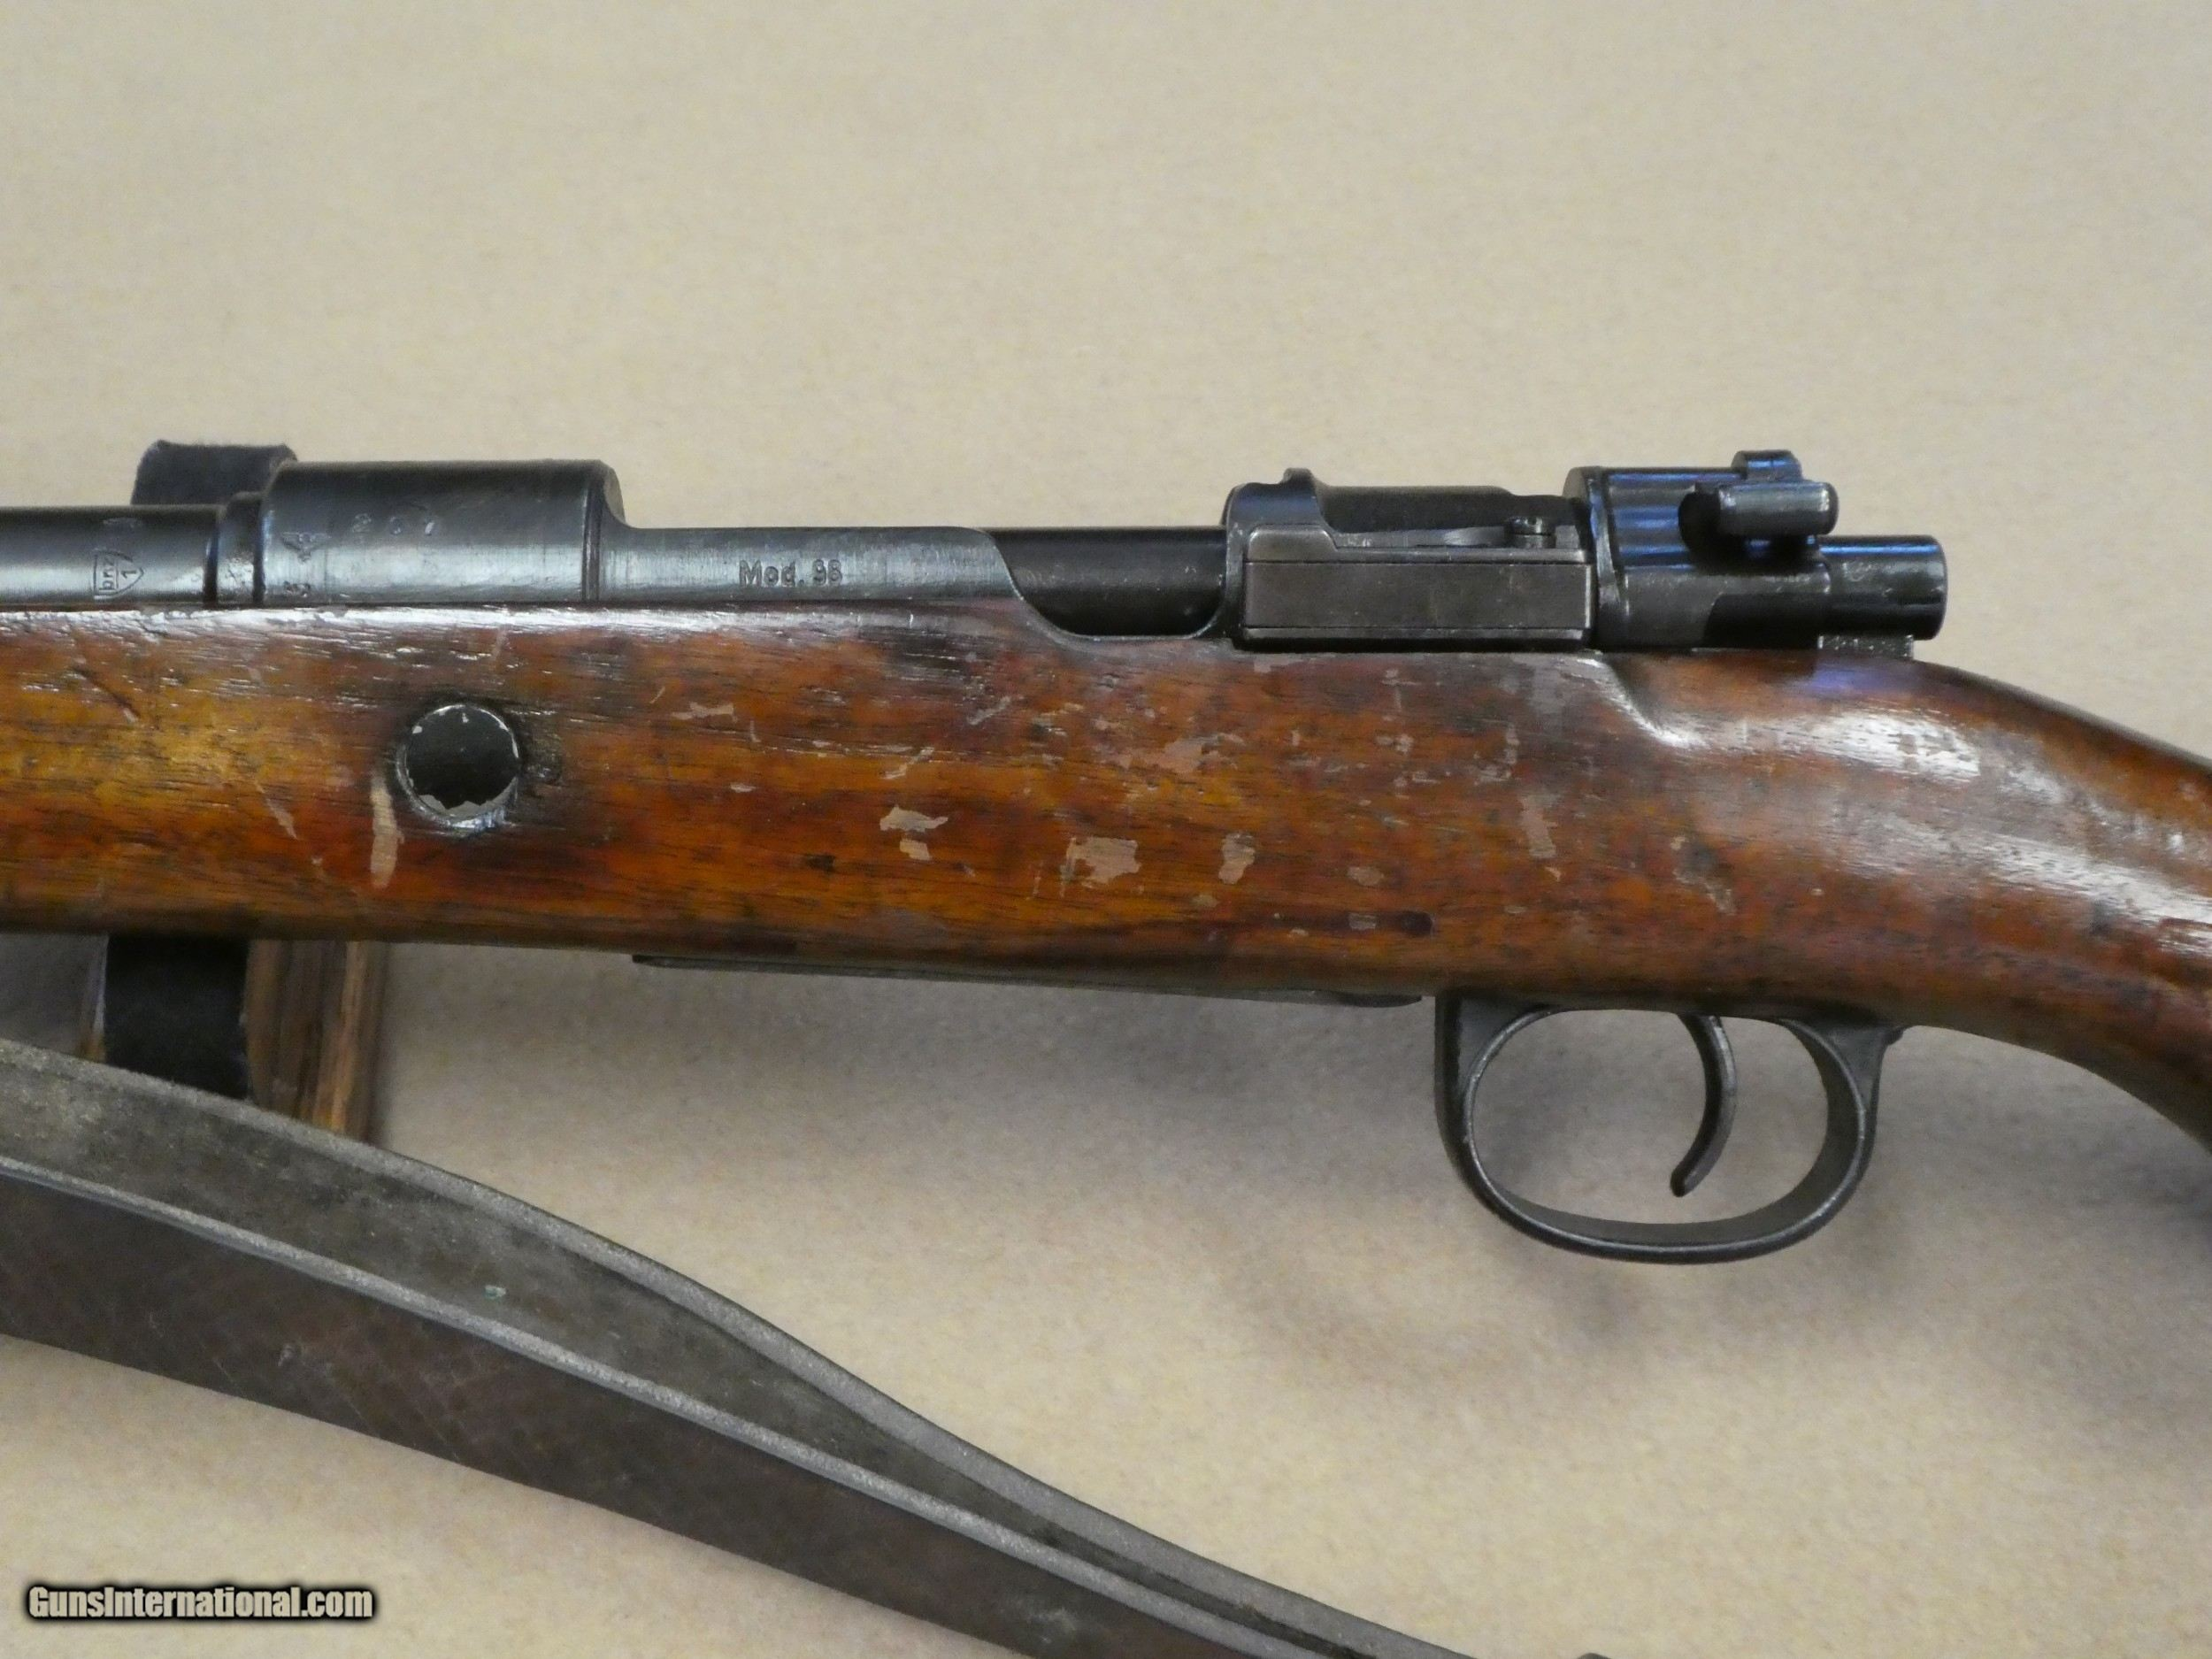 100+ Mauser Rifle Identification HD Wallpapers – My Sweet Home